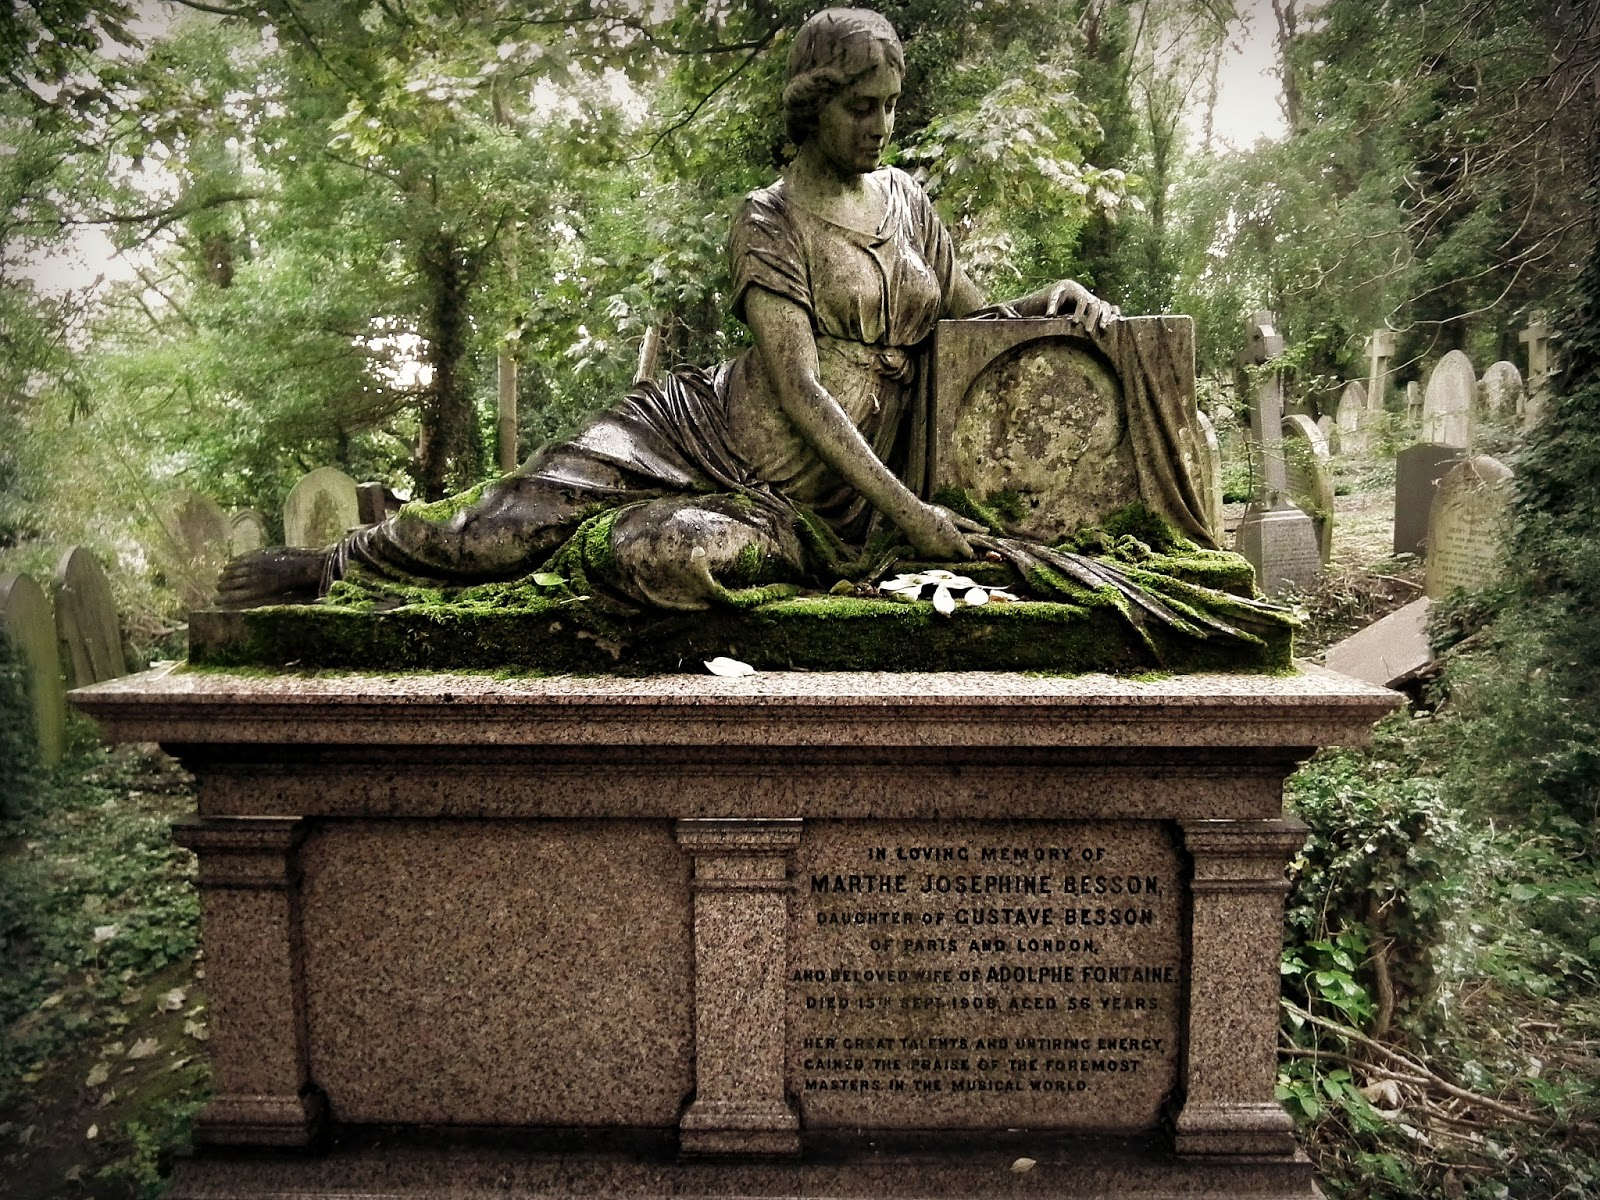 He Sent Forth His Angel With A Great Trumpet; Marthe Josephine Besson  (1852 1908), Highgate East Cemetery